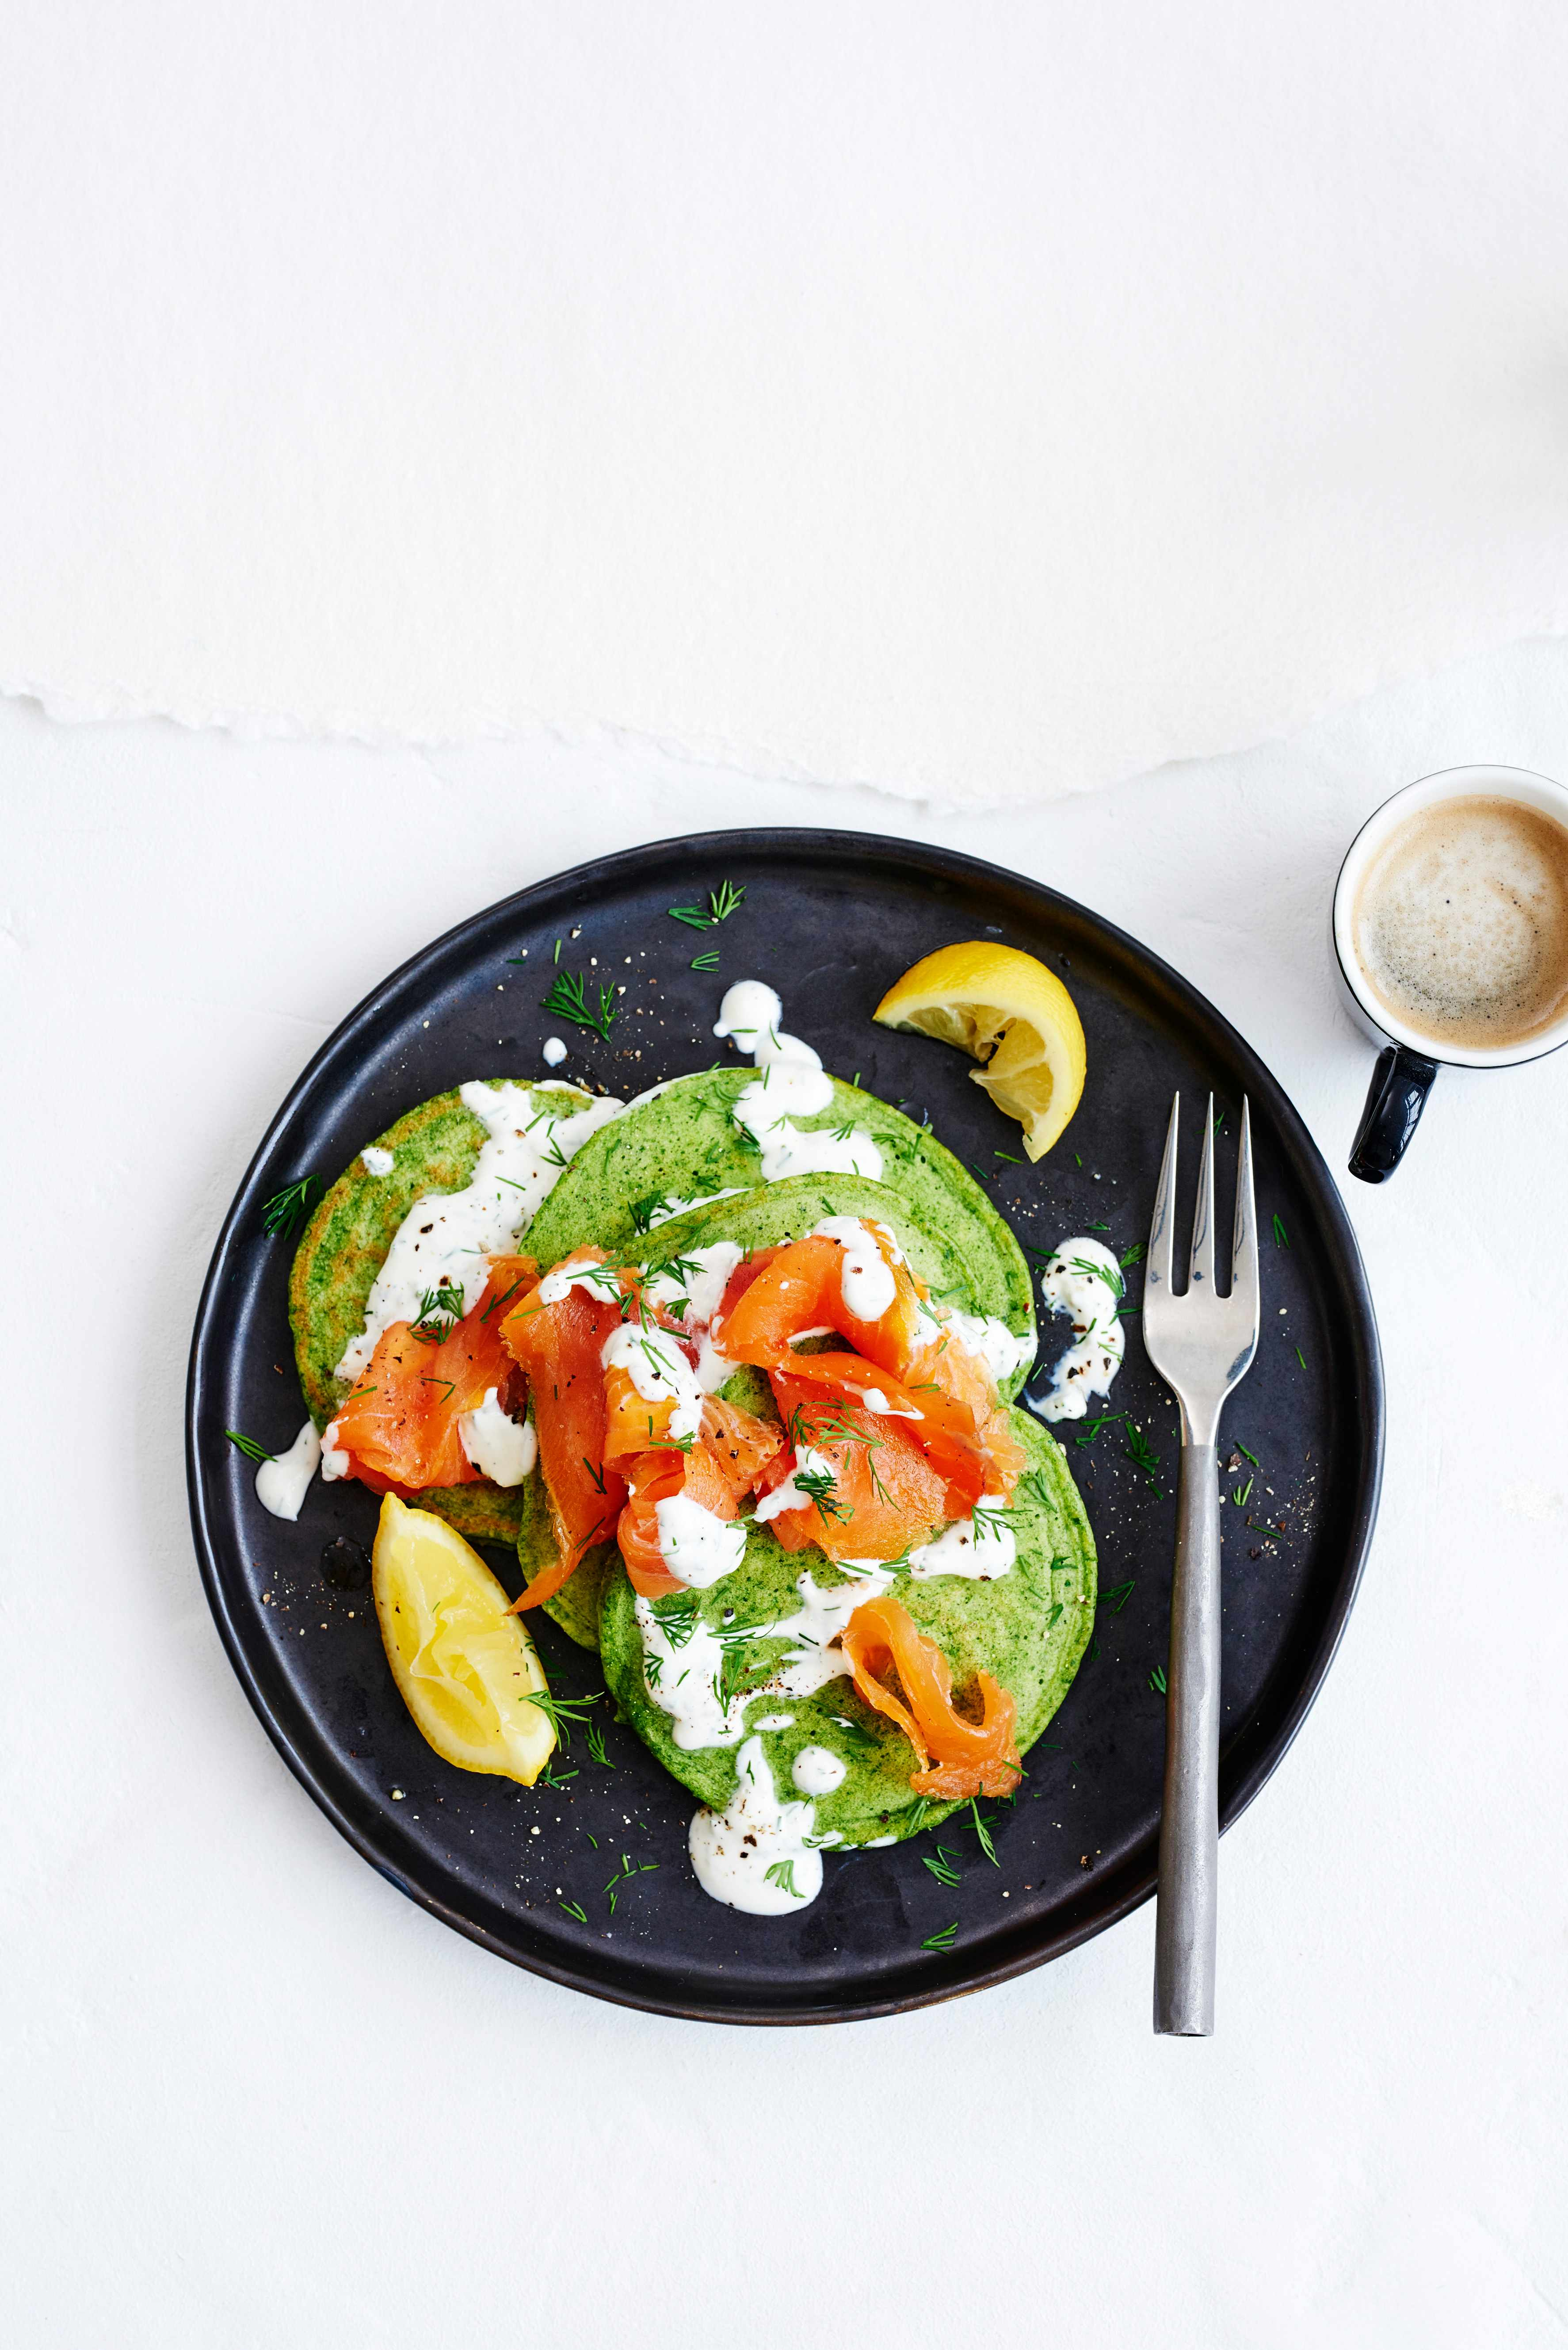 Spinach Pancake Recipe with Smoked Salmon